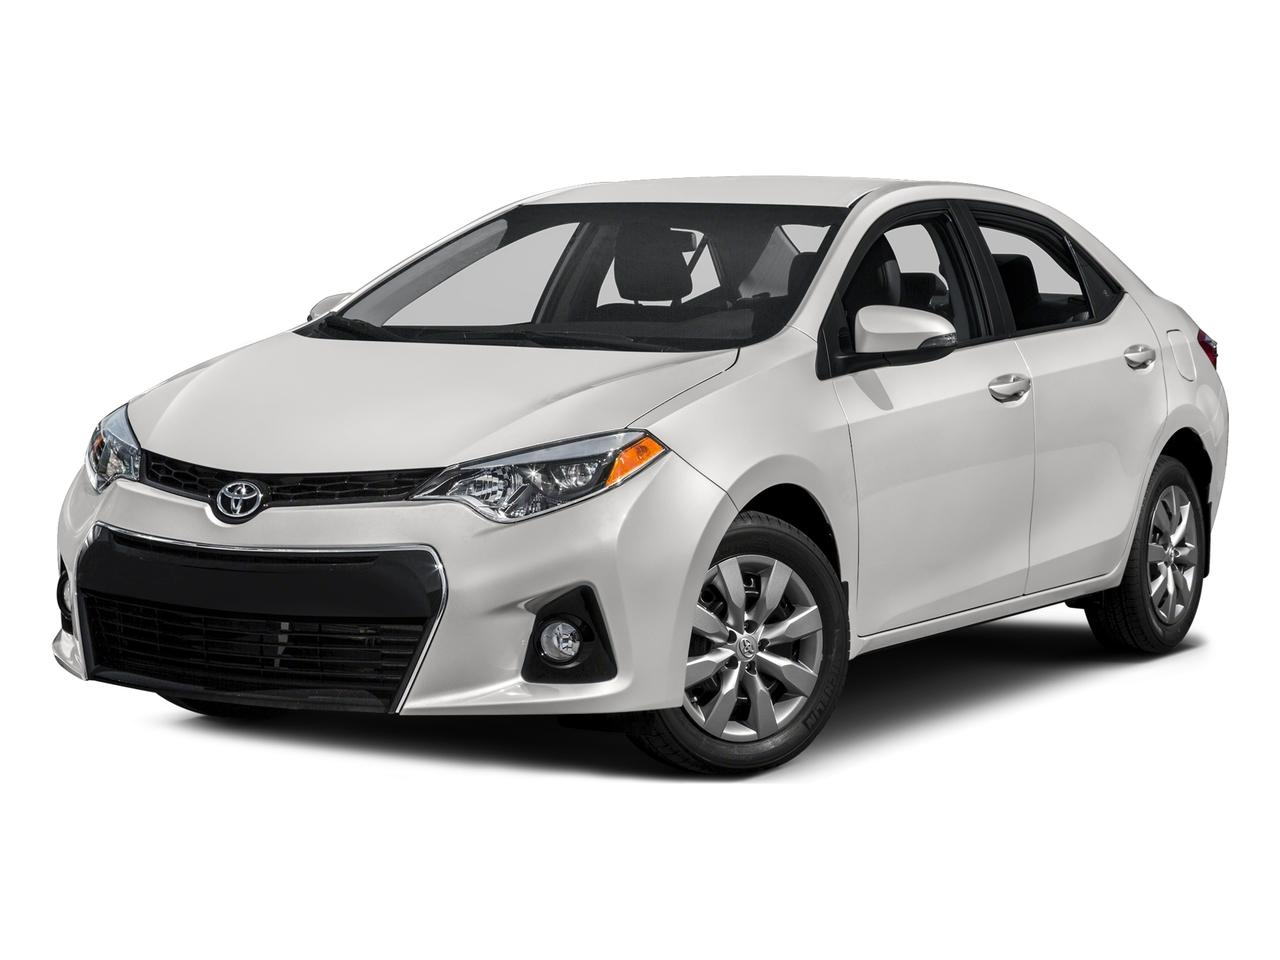 2016 Toyota Corolla Vehicle Photo in Owensboro, KY 42302